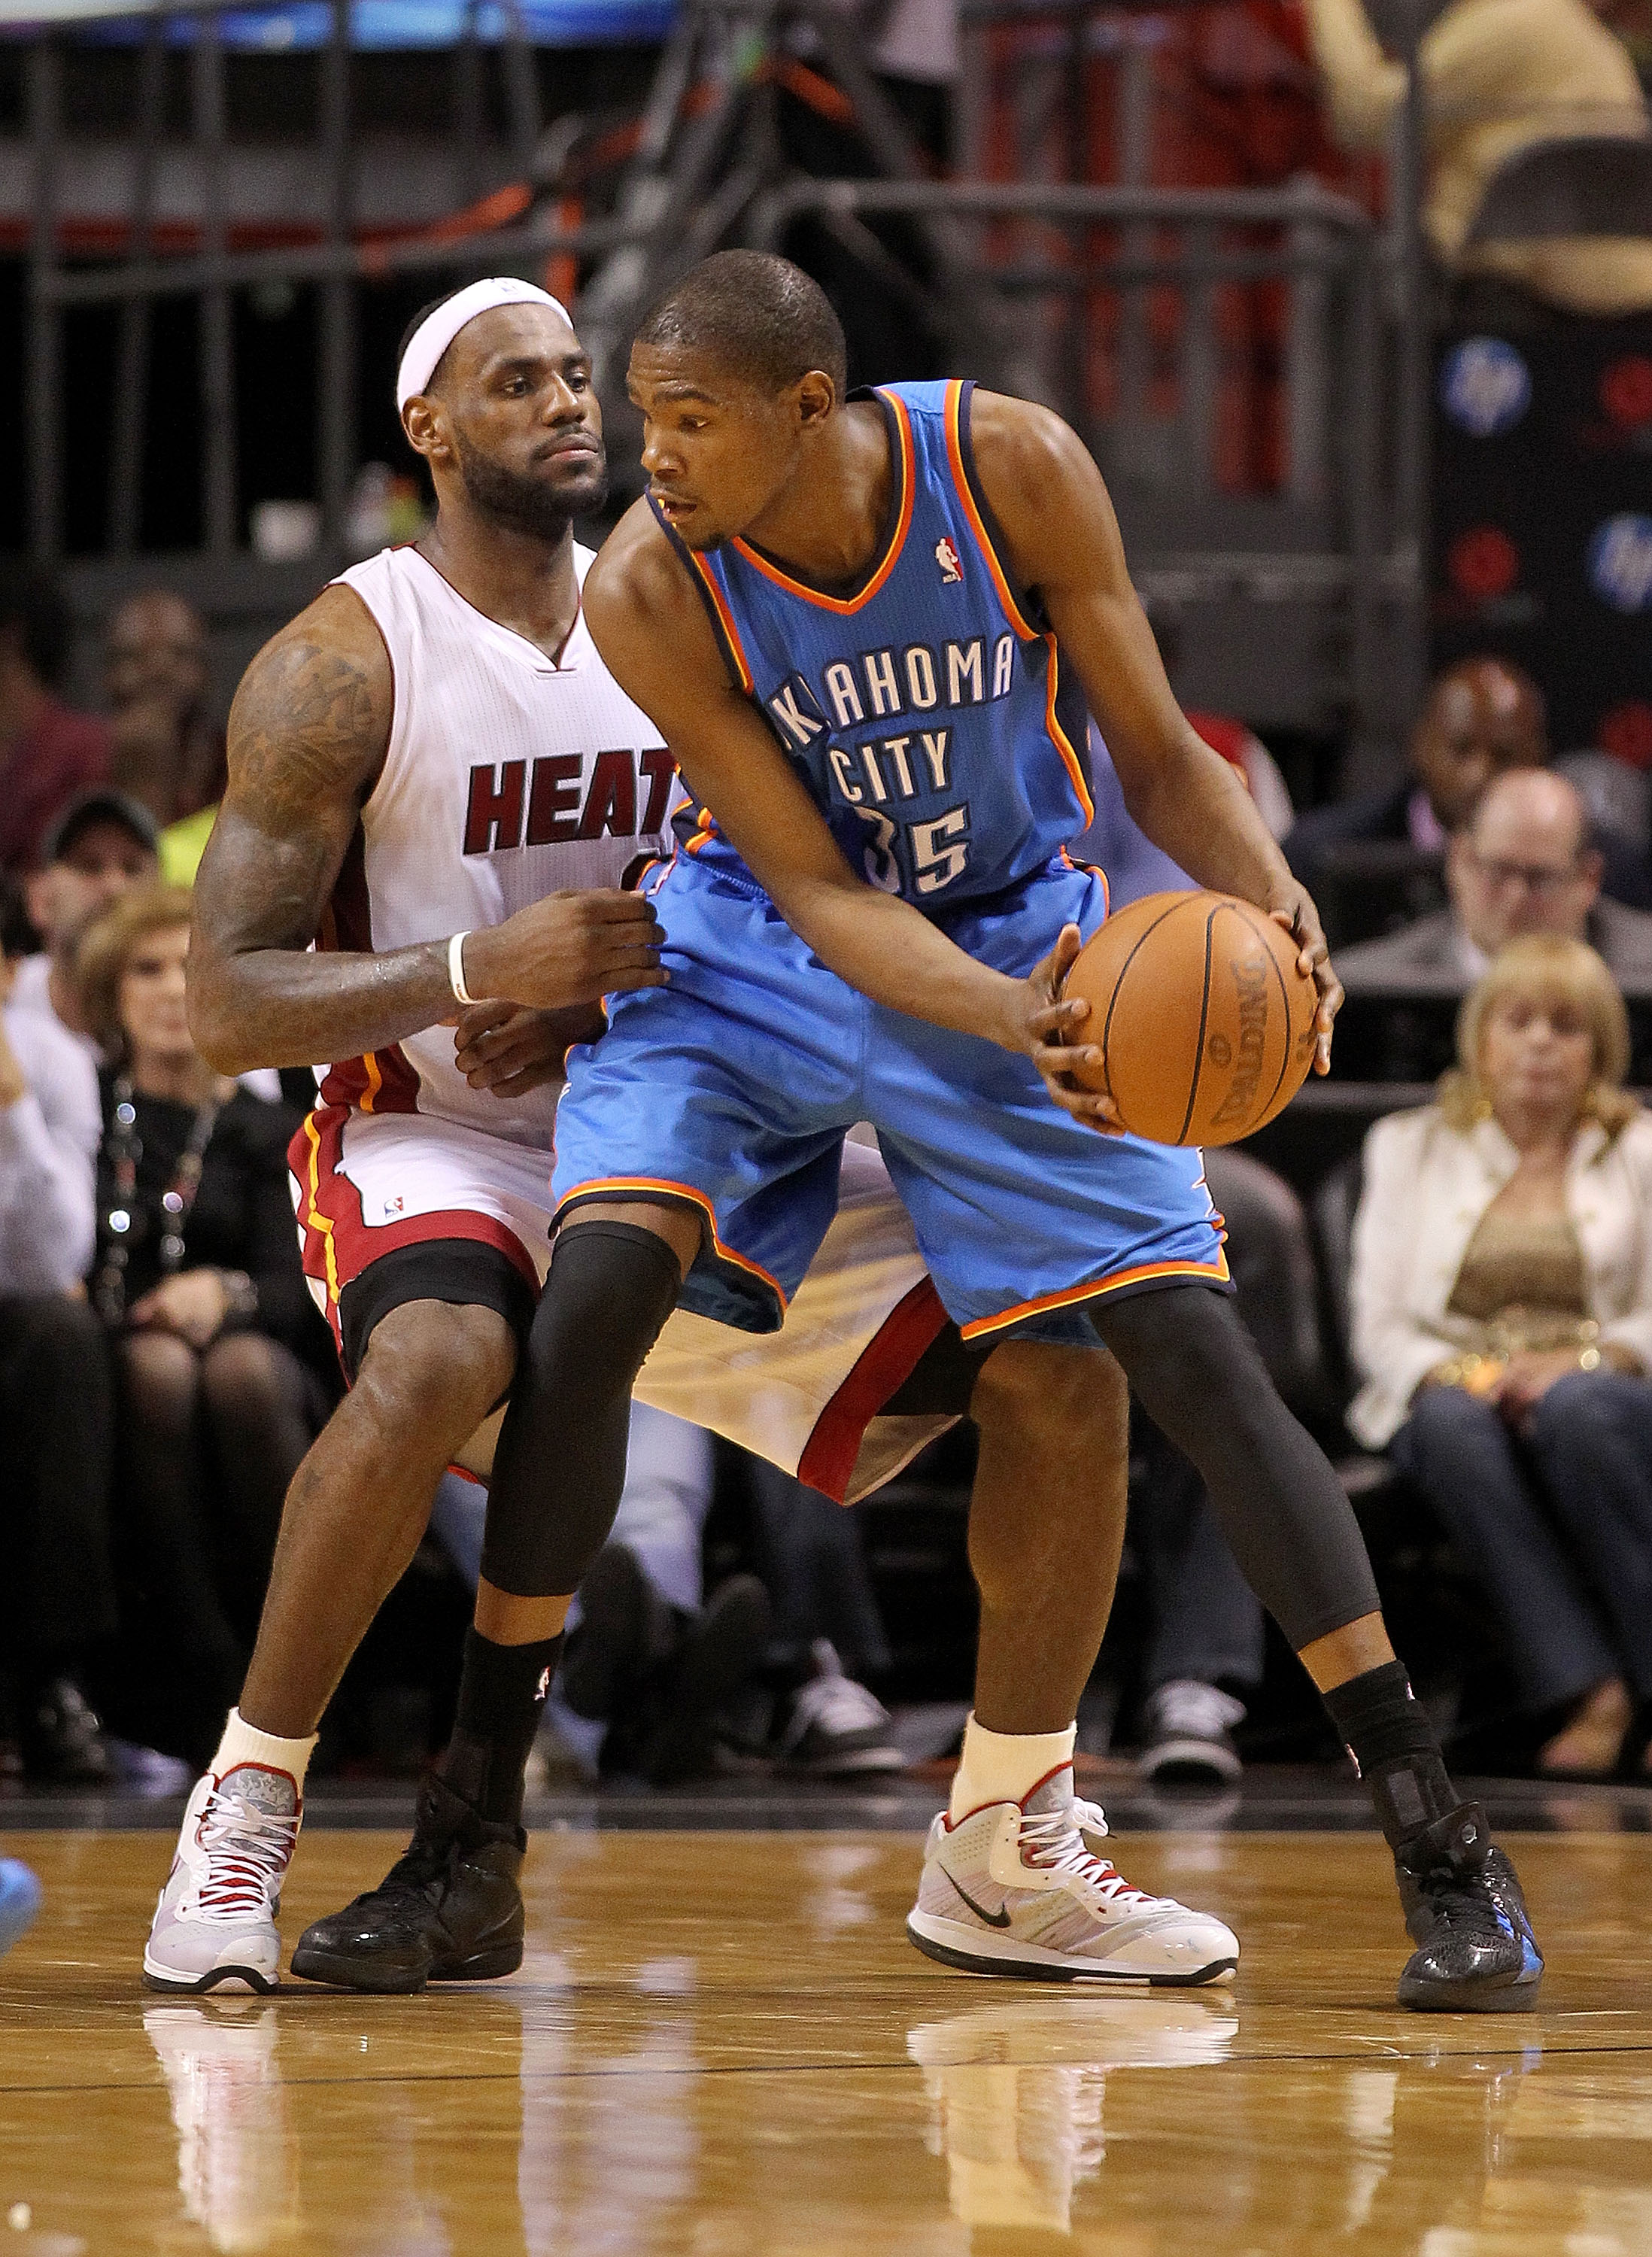 MIAMI, FL - MARCH 16:  LeBron James #6 of the Miami Heat guards Kevin Durant #35 of the Oklahoma City Thunder during a game at American Airlines Arena on March 16, 2011 in Miami, Florida. NOTE TO USER: User expressly acknowledges and agrees that, by downl